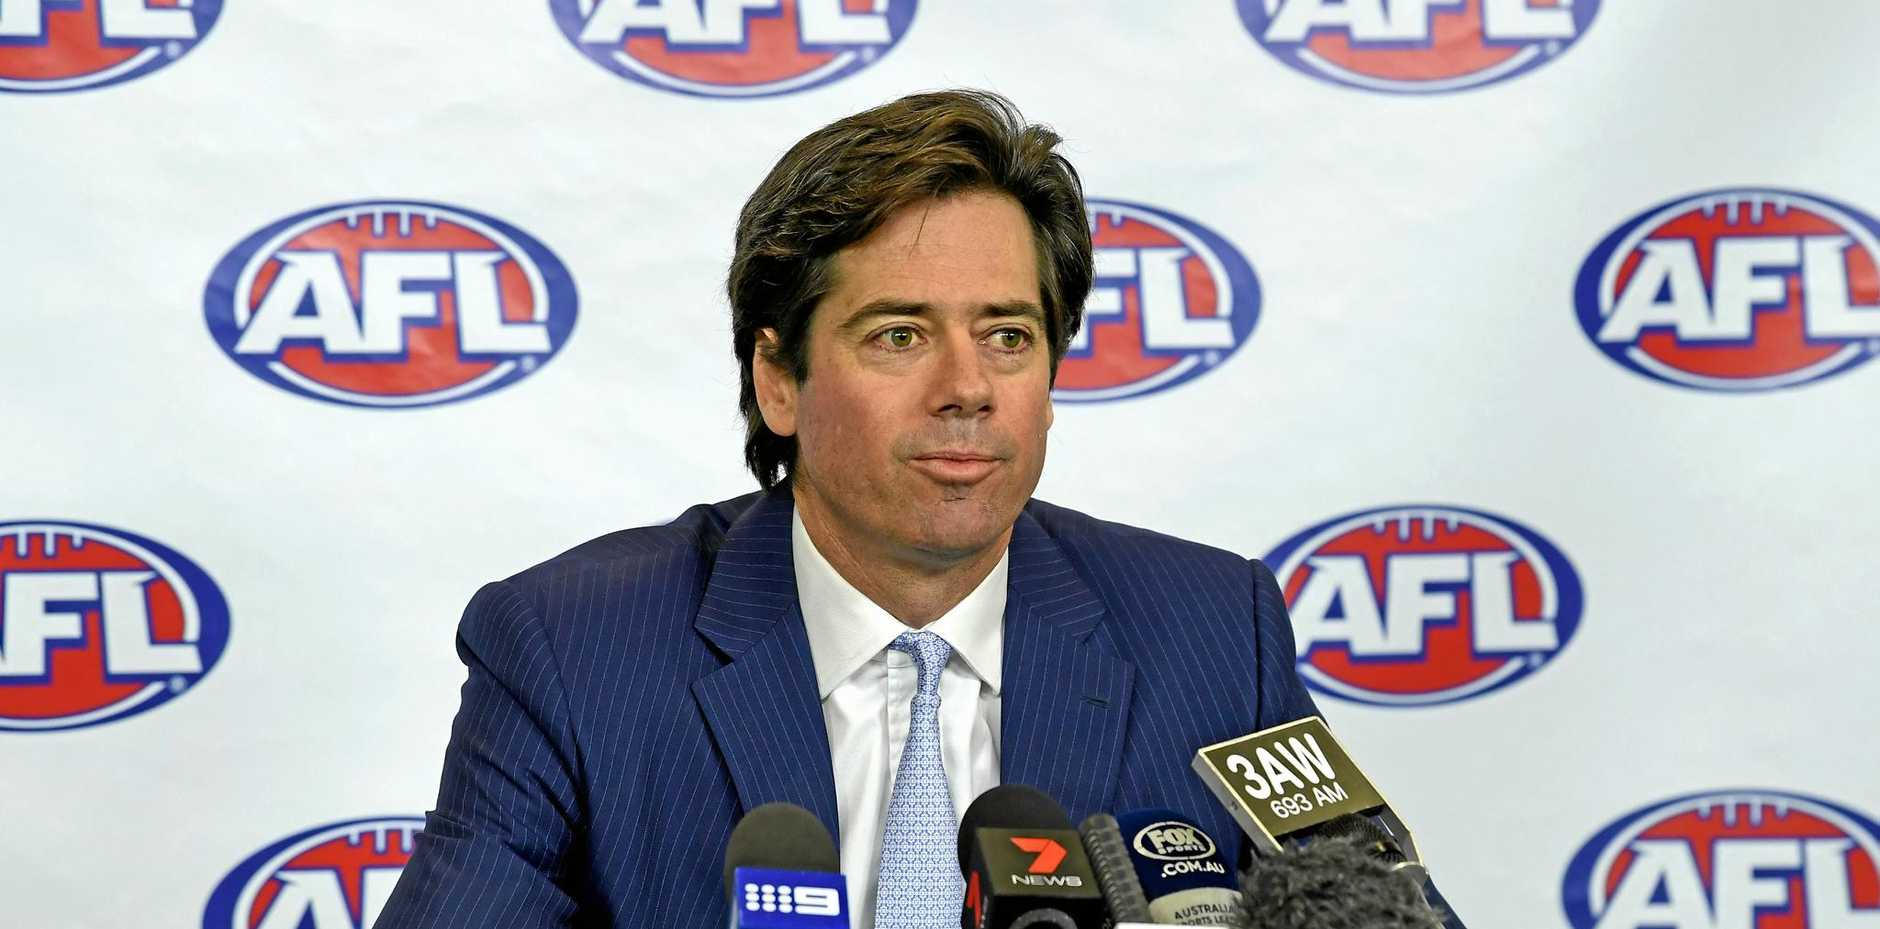 AFL chief executive Gillon McLachlan speaks during a press conference on the resignations of high-ranking executives Simon Lethlean and Richard Simkiss.